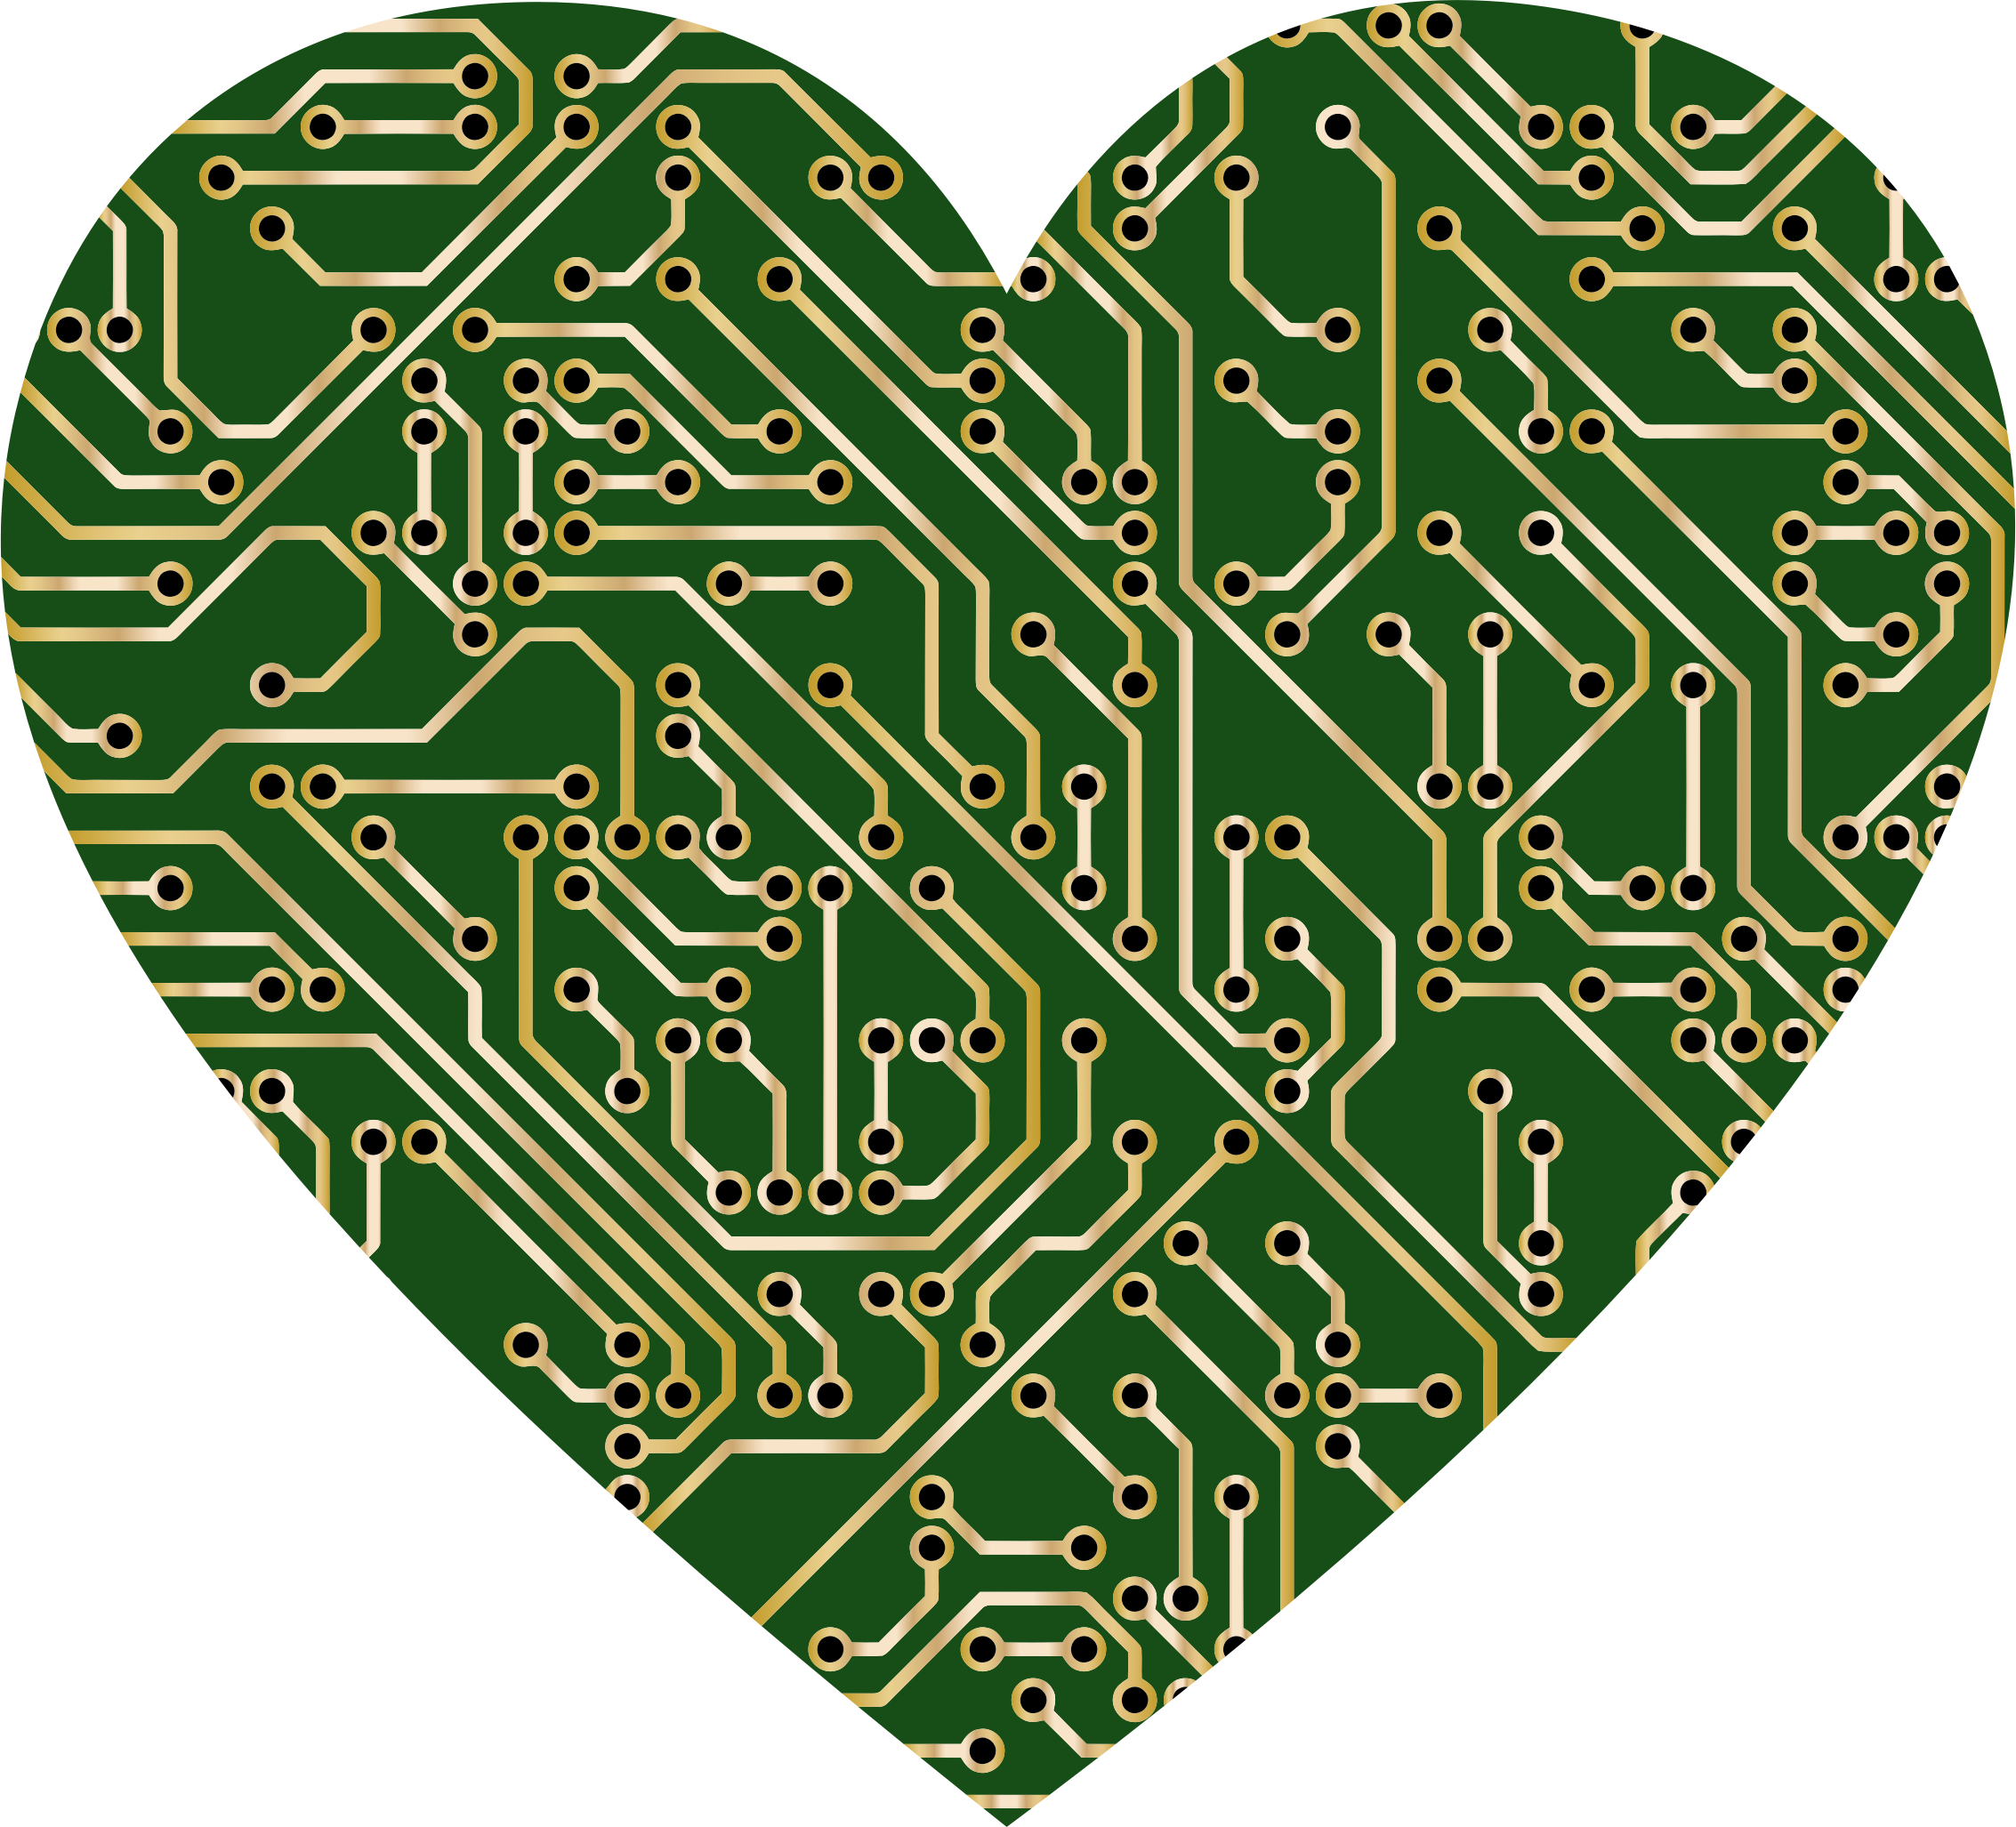 Clipart heart leopard print. Printed circuit board icons